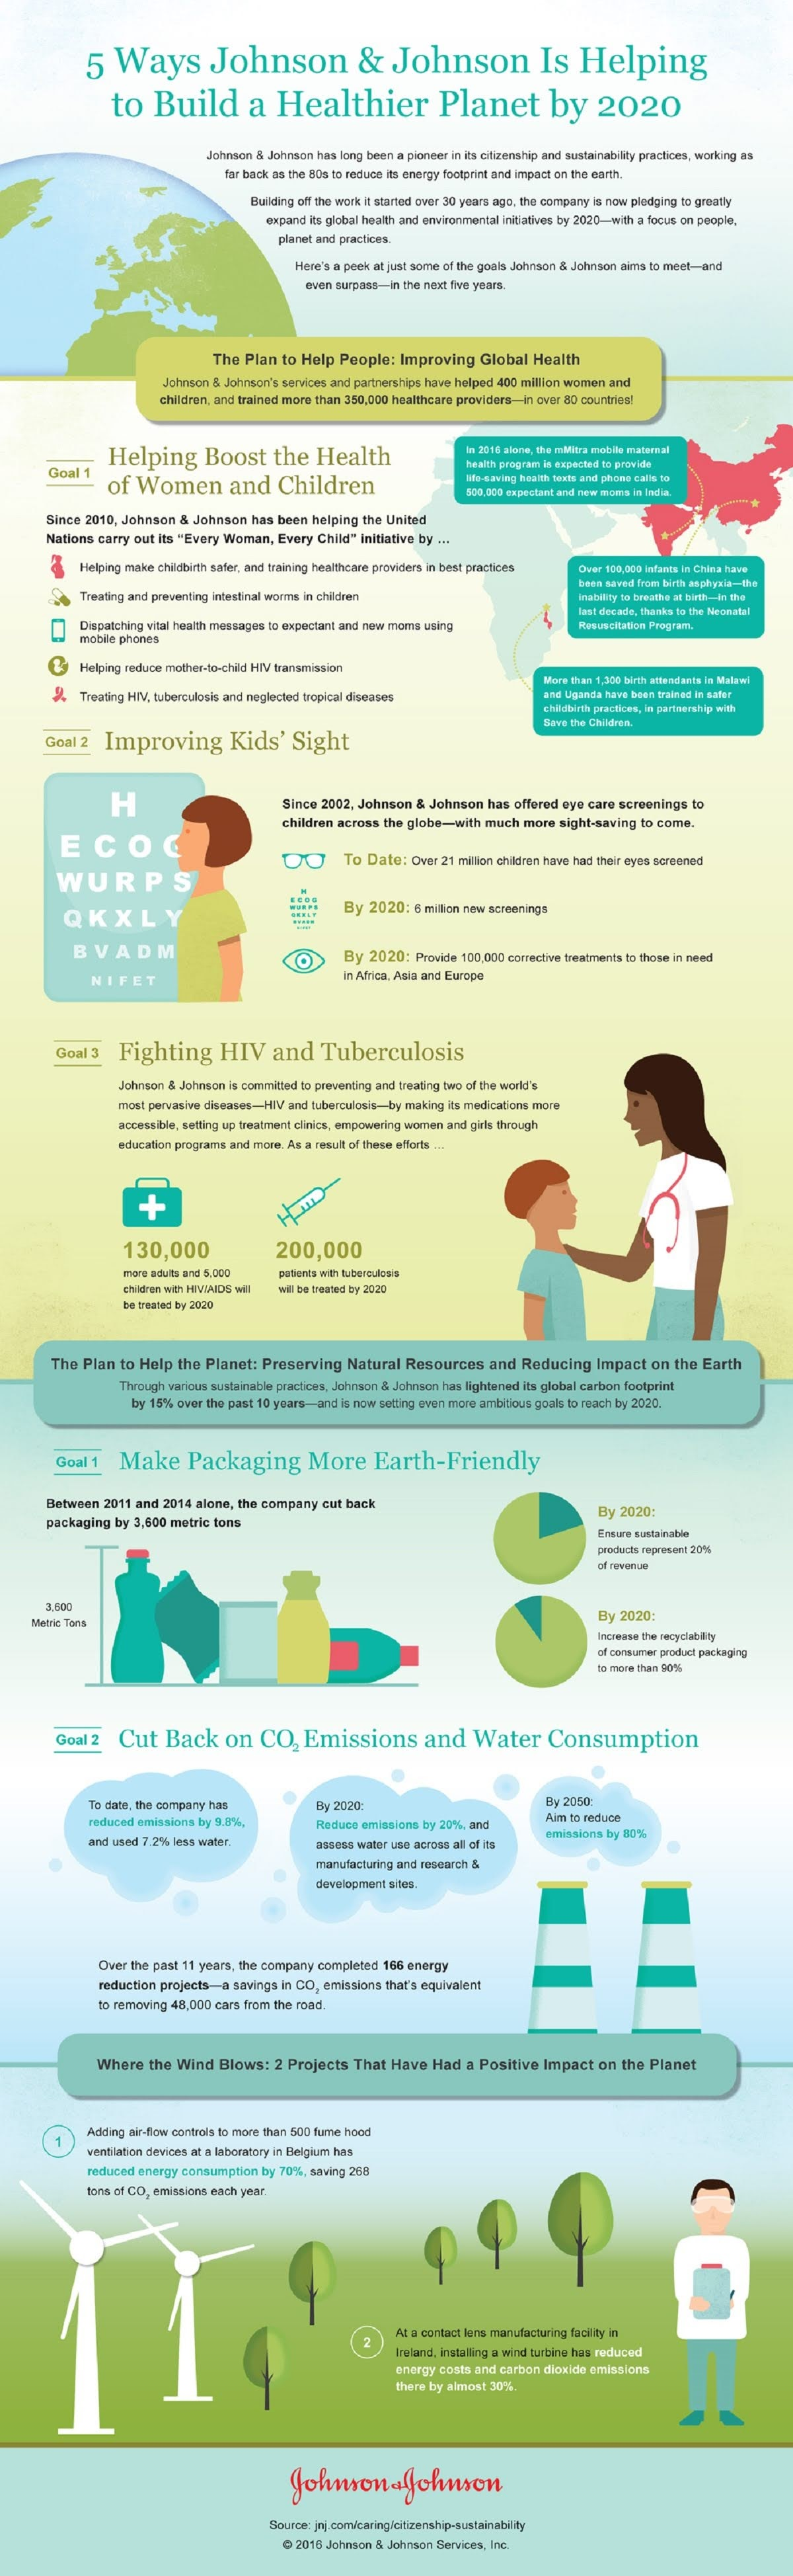 5-ways-johnson-johnson-is-helping-to-build-a-healthier-planet-infographic